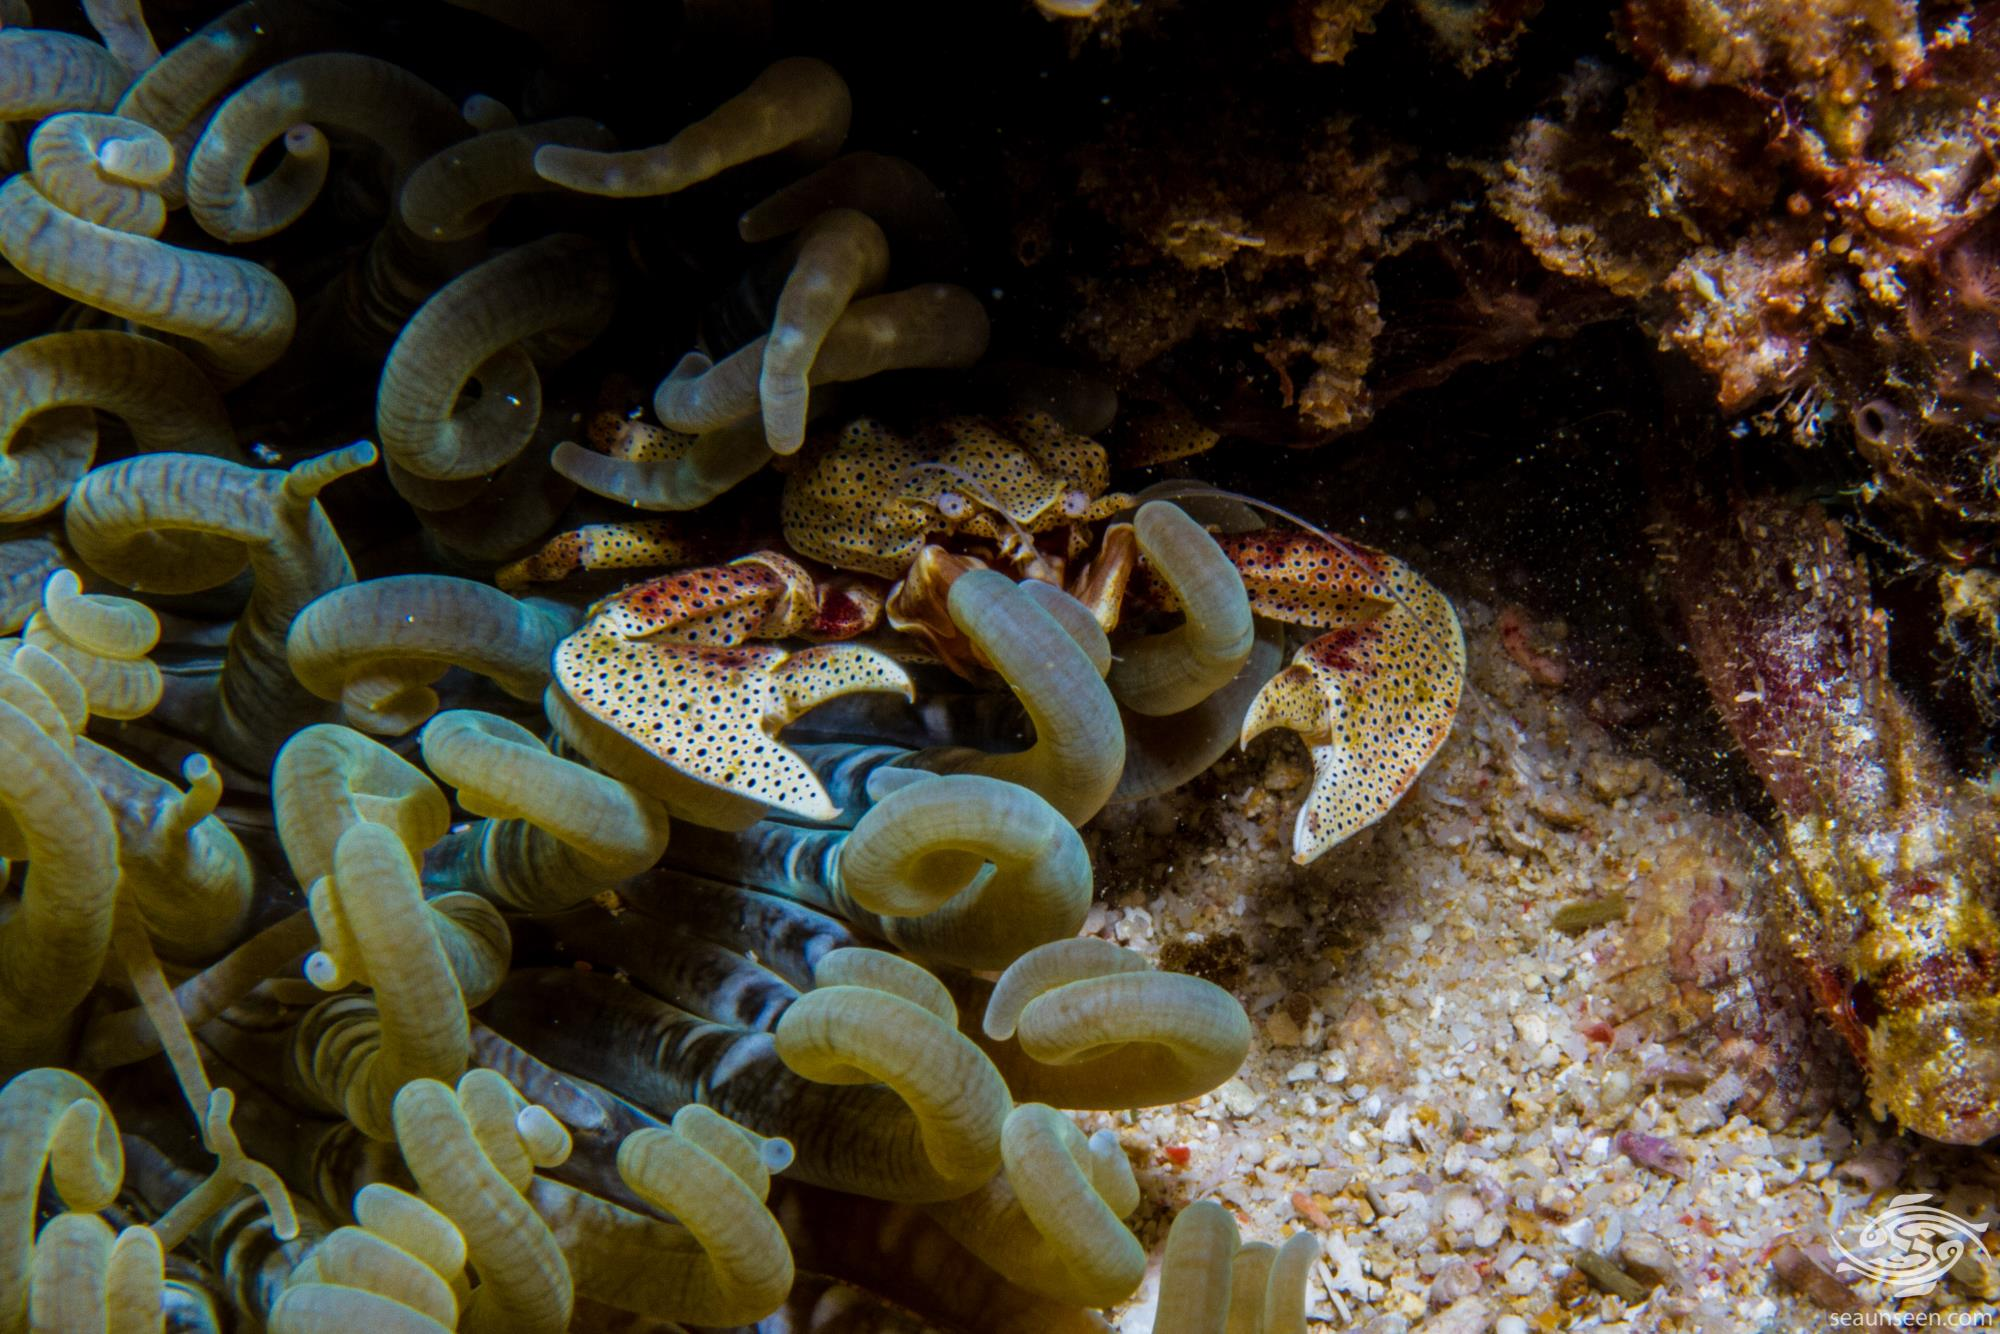 Yellow Porcelain Anemone Crab, Neopetrolisthes alobatus